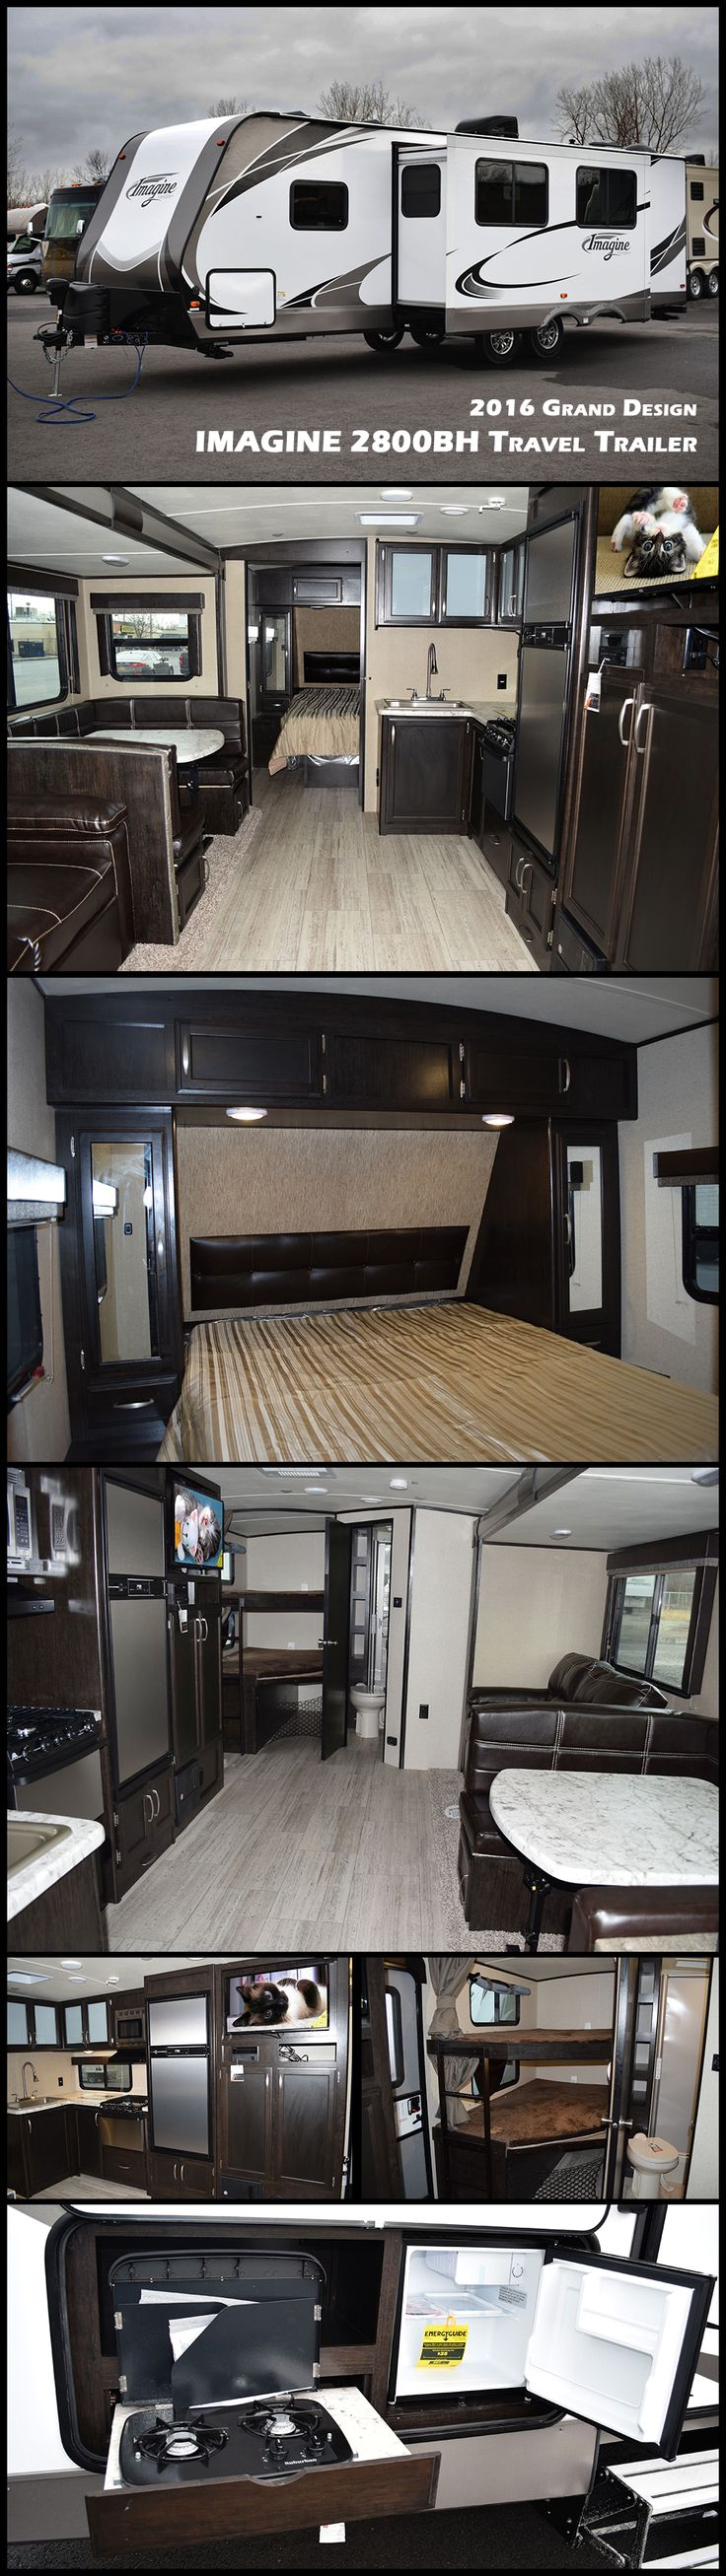 Imagine the fun you will have in this light weight, bunkhouse 2016 IMAGINE 2800BH travel trailer by Grand Design. This camper easily sleeps 10 and provides a wide open floor space thanks to the large slide out. Your whole family will love this bunk house with the double-over-double bunks, large U-shape dinette and comfortable, private master bedroom. The Imagine features an outdoor kitchen and a 21′ awning creating the perfect campsite!